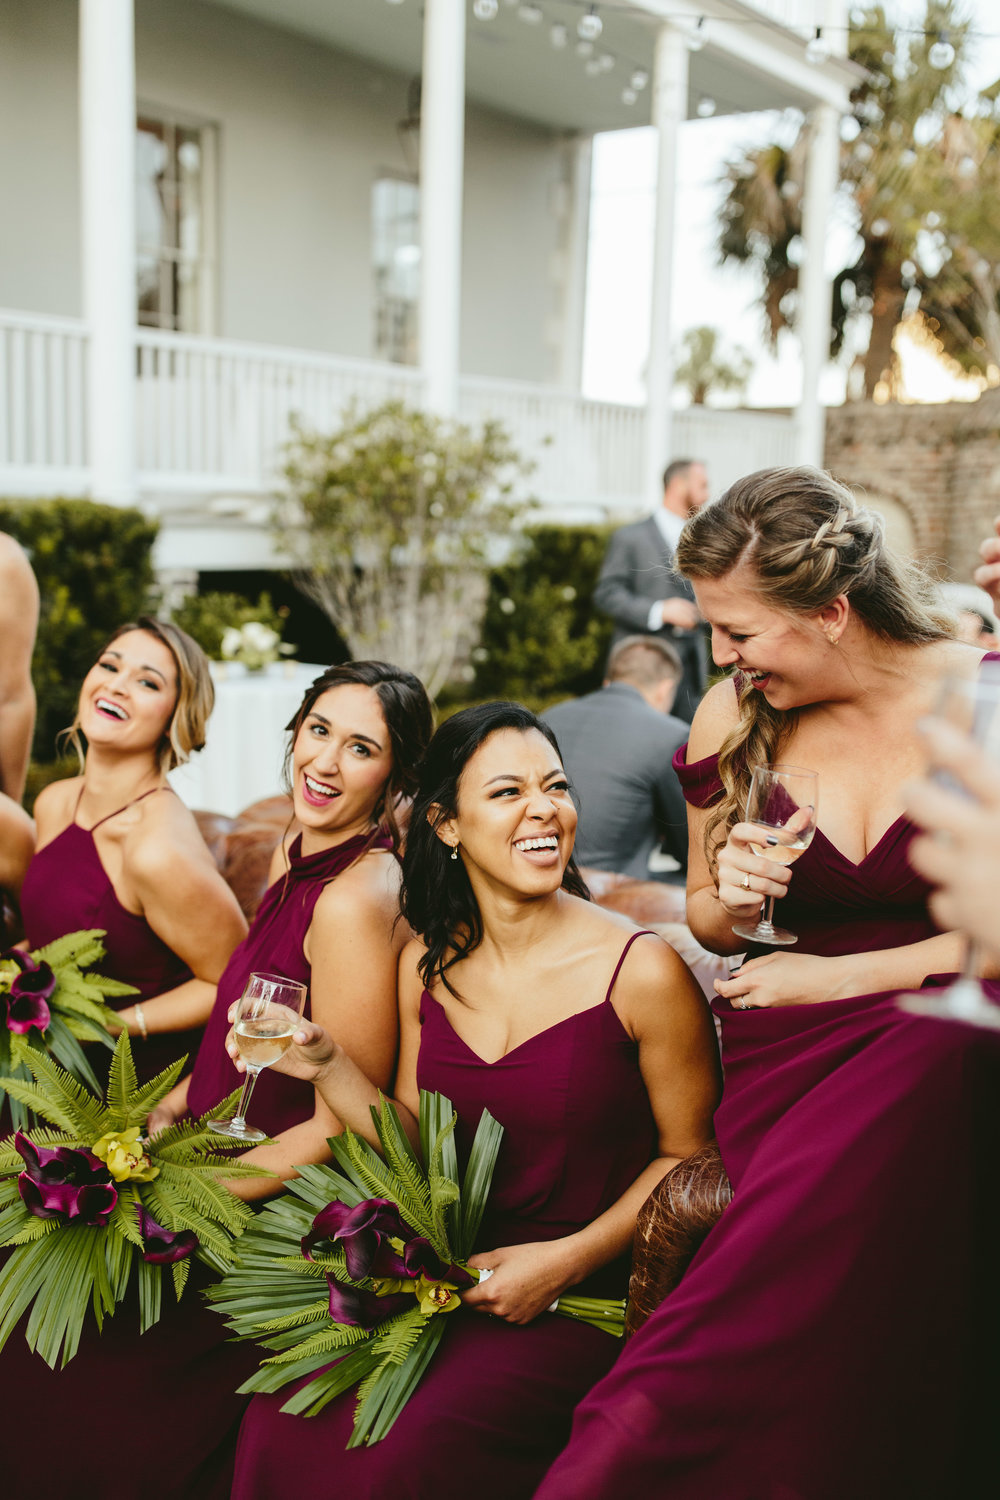 bridesmaid dress, mismatched bridal gowns, courtyard wedding reception, unique bridesmaid dress, blush bridesmaid dress, maroon bridesmaid dress, unique wedding florals, trumpet tulip bouquet, tropical wedding bouquet, unique reception, unique reception rentals, courtyard wedding reception, unique backyard wedding reception, string lights wedding,courtyard wedding ceremony, backyard wedding ceremony, wedding ceremony inspiration, unique ceremony location, groomsmen, bridal party photo inspiration, black tie bridal party, black tie groom, groomsmen in tux, groomsmen style ideas, Philadelphia wedding, destination wedding, Brooklyn wedding, Brooklyn elopement, Philadelphia elopement, Gadsden house Charleston South Carolina, southern wedding inspiration, unique wedding inspiration, wedding inspiration, destination wedding inspiration, wedding ideas, romantic wedding inspiration, classy wedding ideas